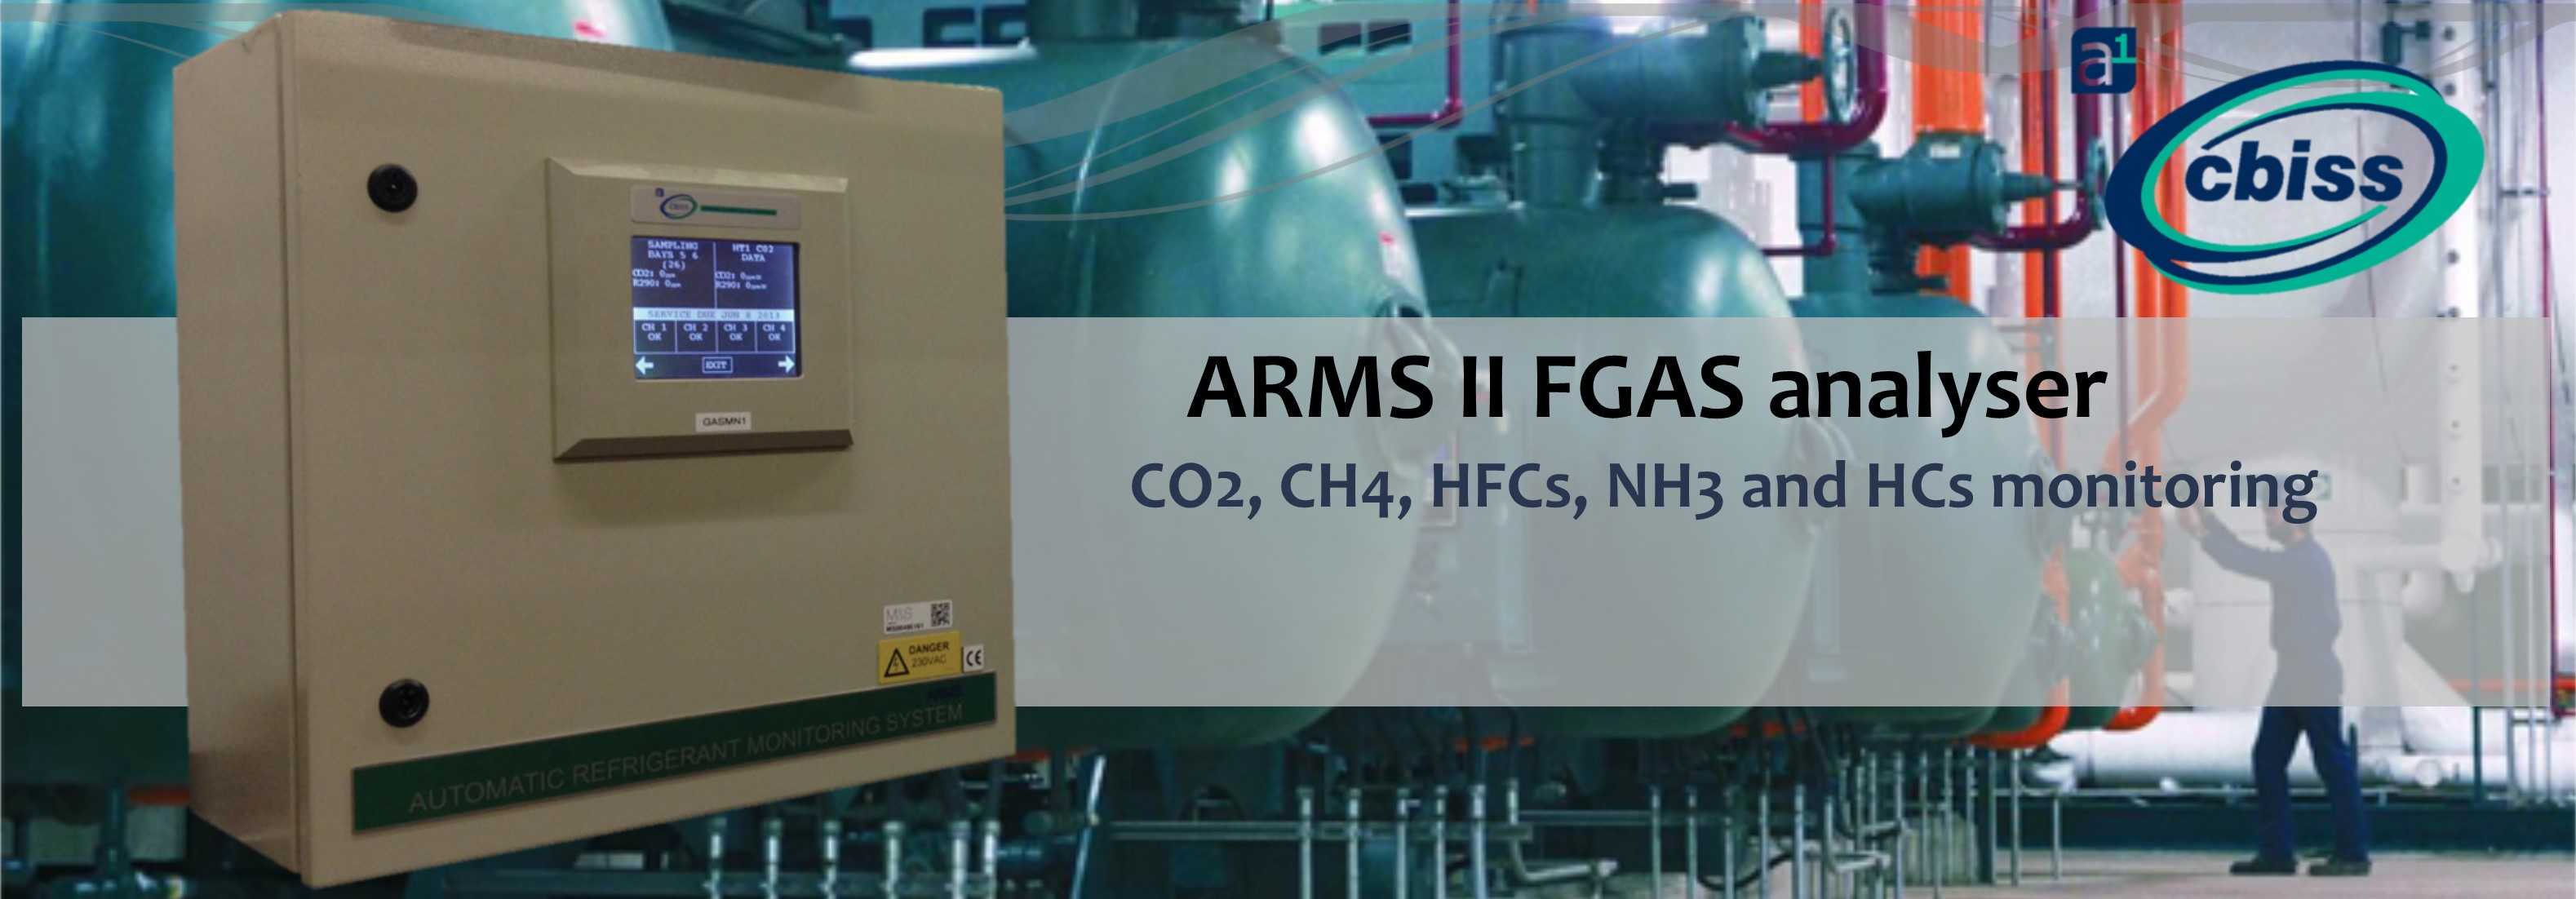 ARMS II automatic refrigerant monitoring system